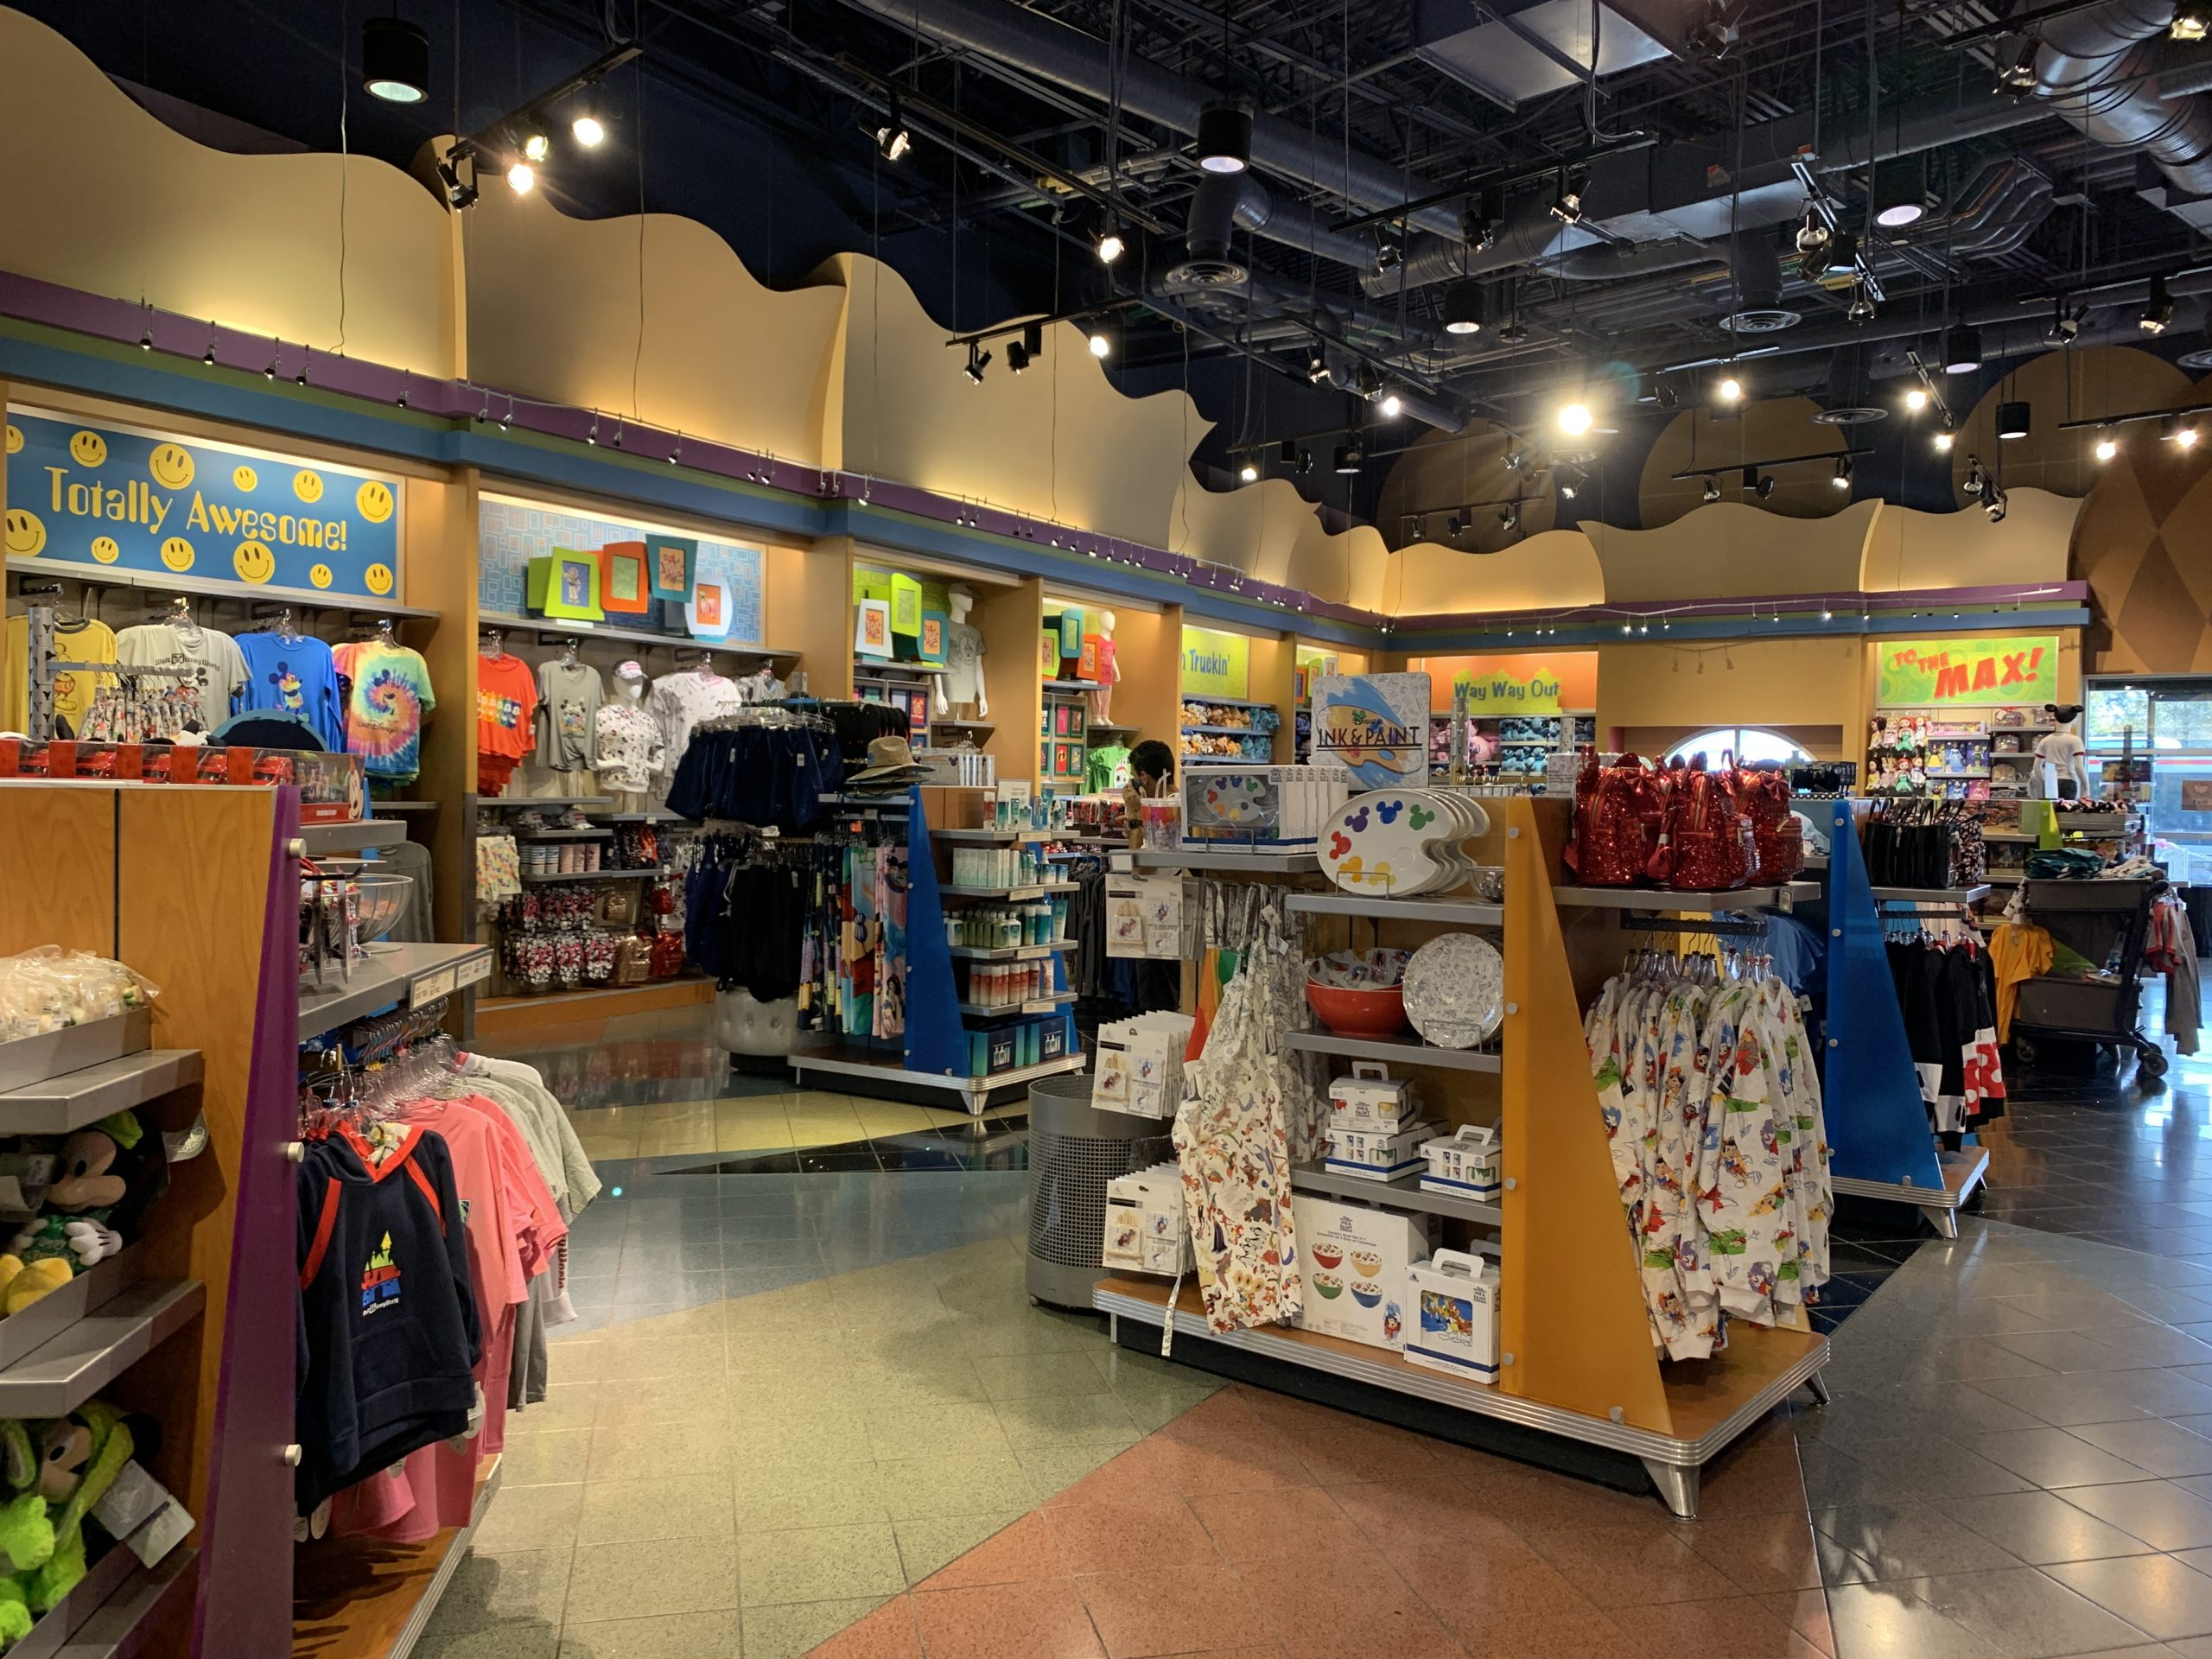 Shopping at the Pop Century resort